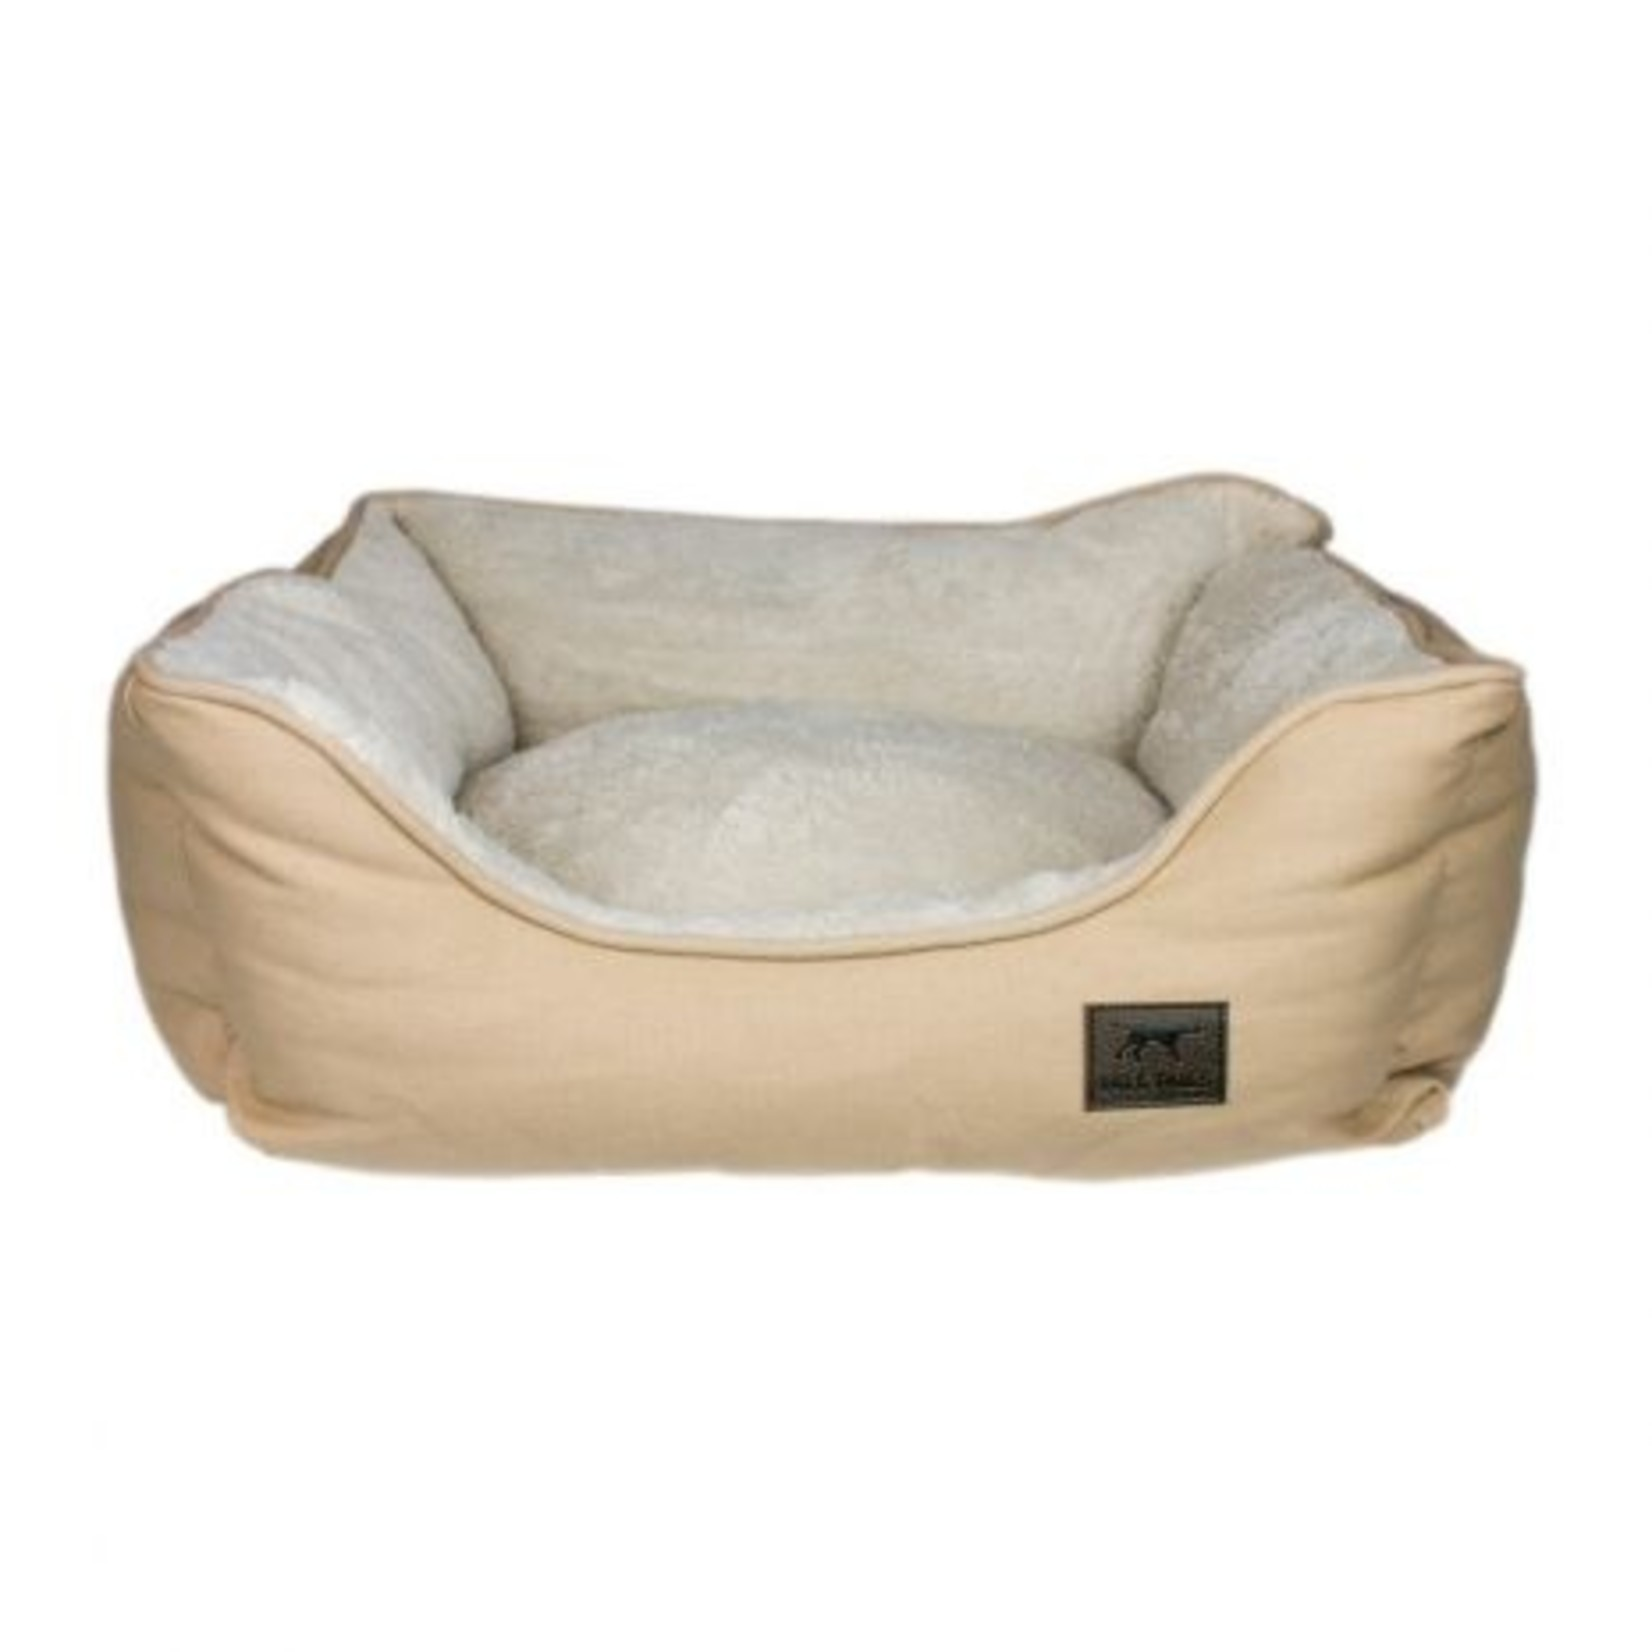 Tall Tails TALL TAILS Dream Chaser Bolster Bed Khaki Lrg 30x27 - Final Sale - No returns/exchanges